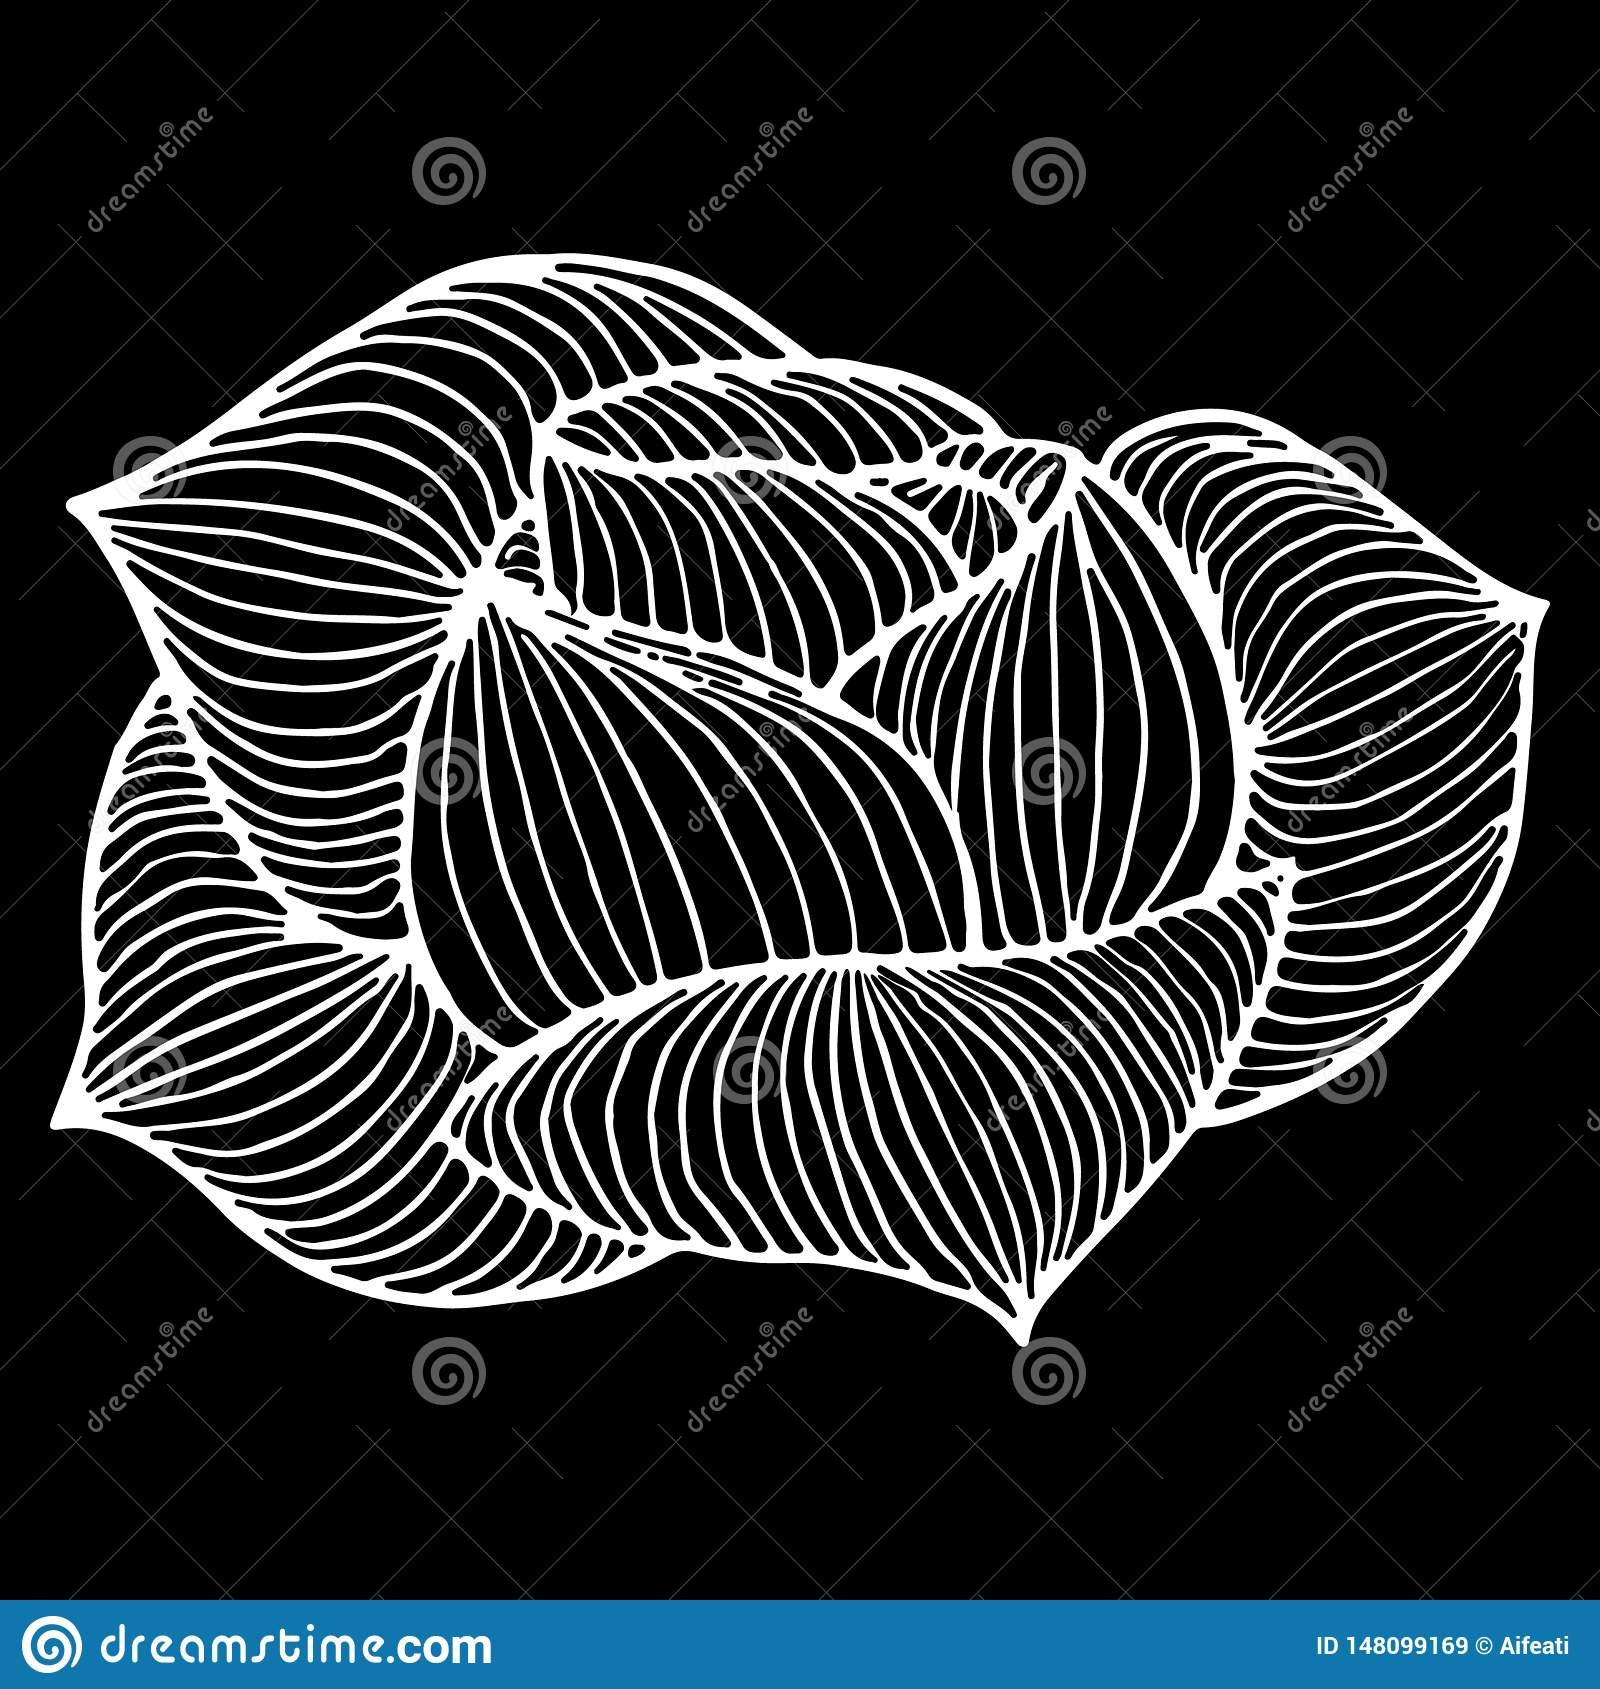 Abstract hand drawn rose or peony flower isolated on black background. Vector illustration. Line art. Sketch